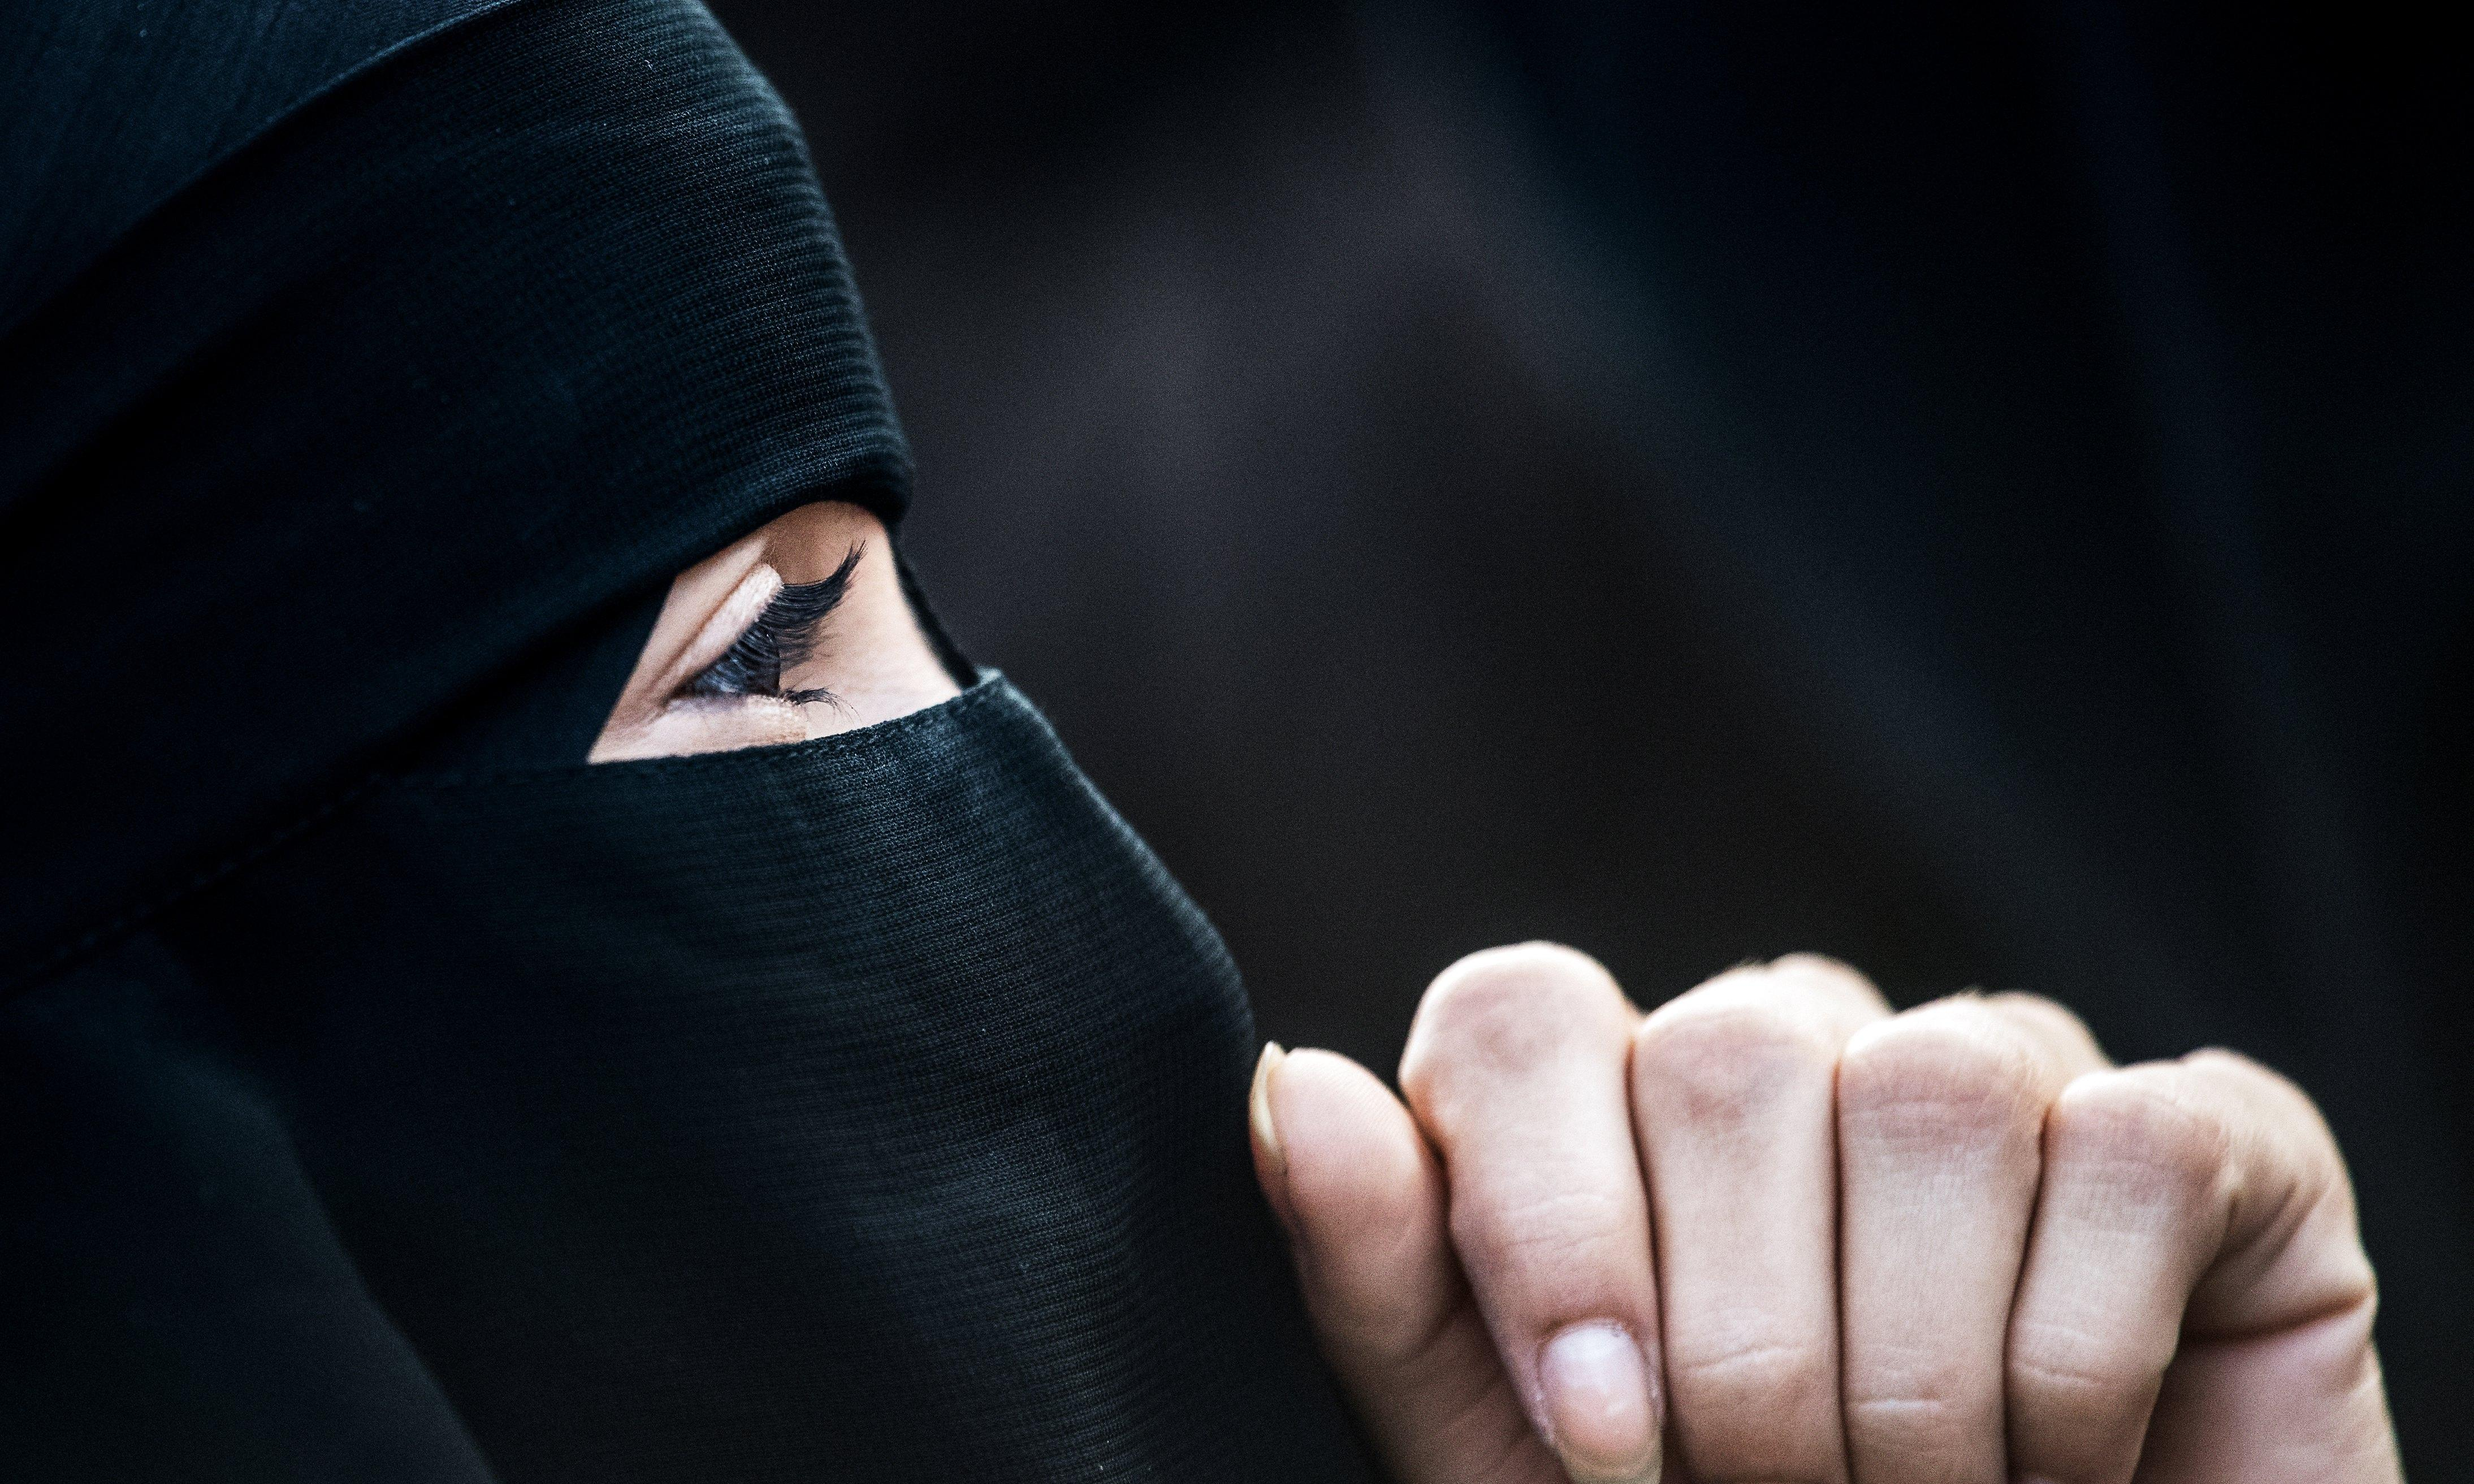 Quebec passes law banning facial coverings in public